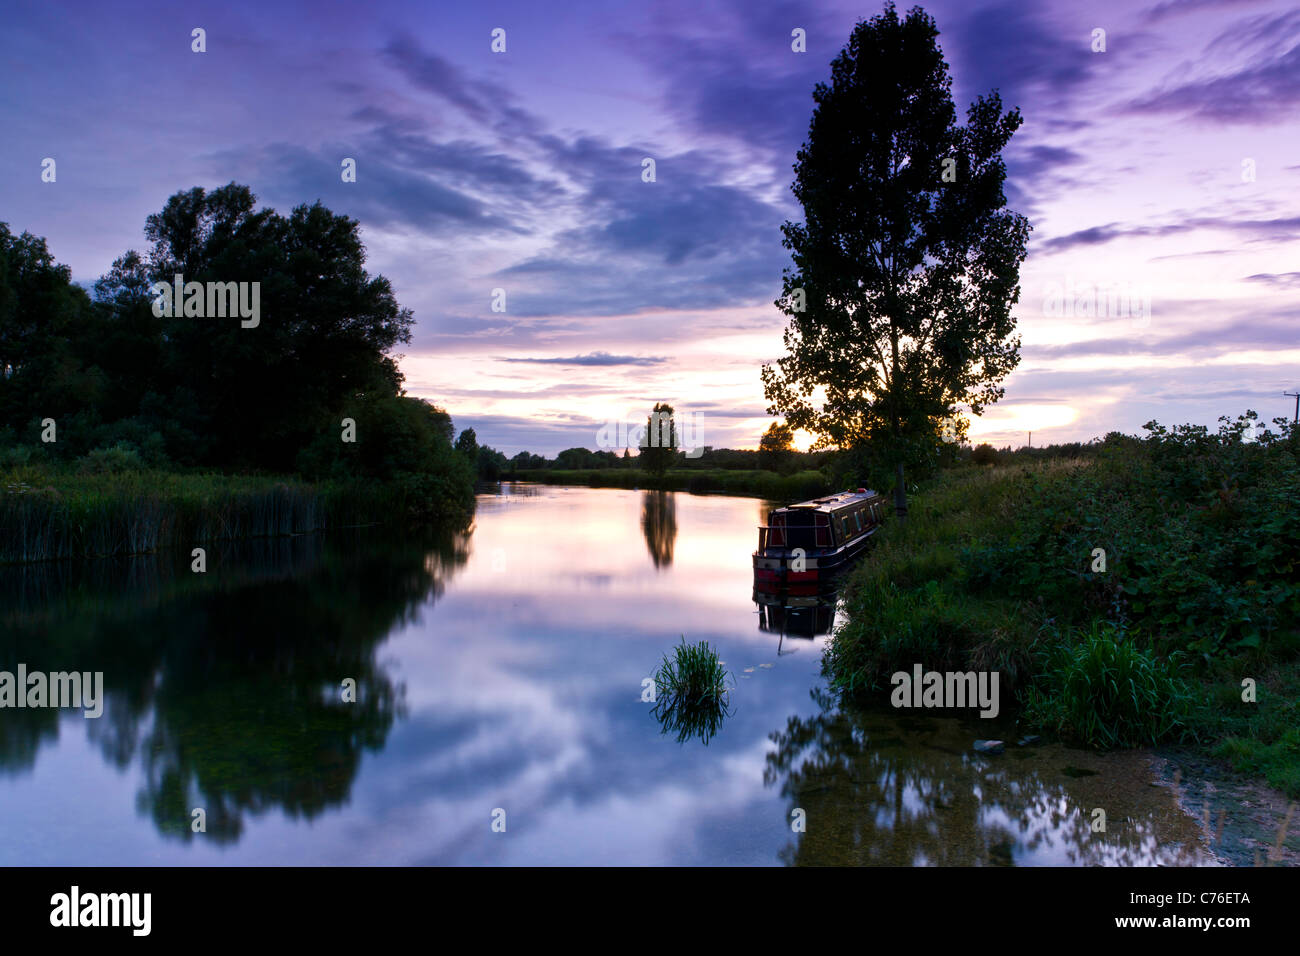 A Narrowboat on the Great Ouse at dusk - Stock Image